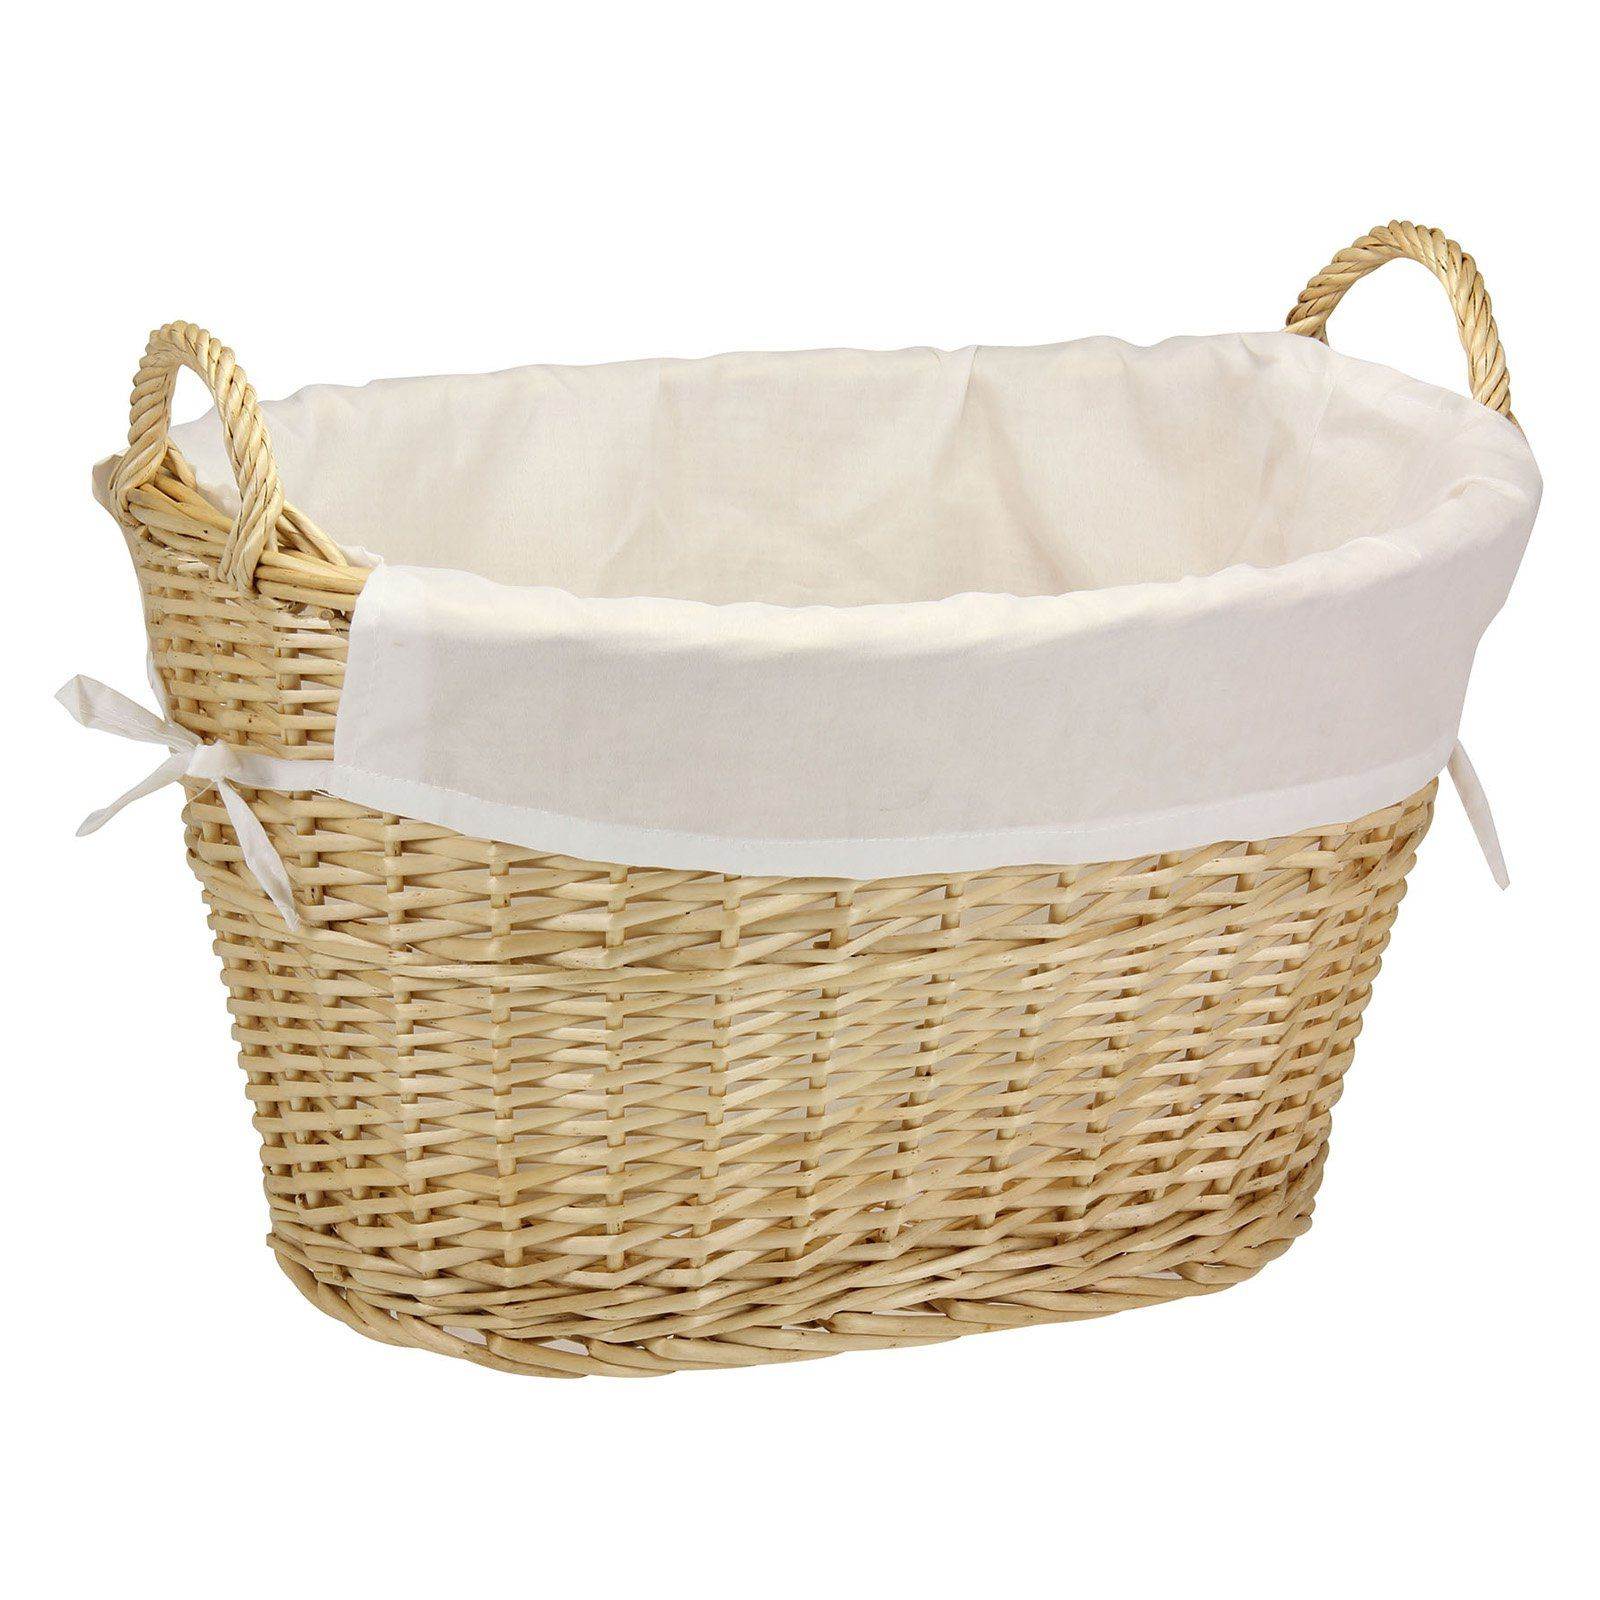 Household Essentials Willow Laundry Basket With Lining Handles Laundry Hamper Basket Wicker Laundry Hamper